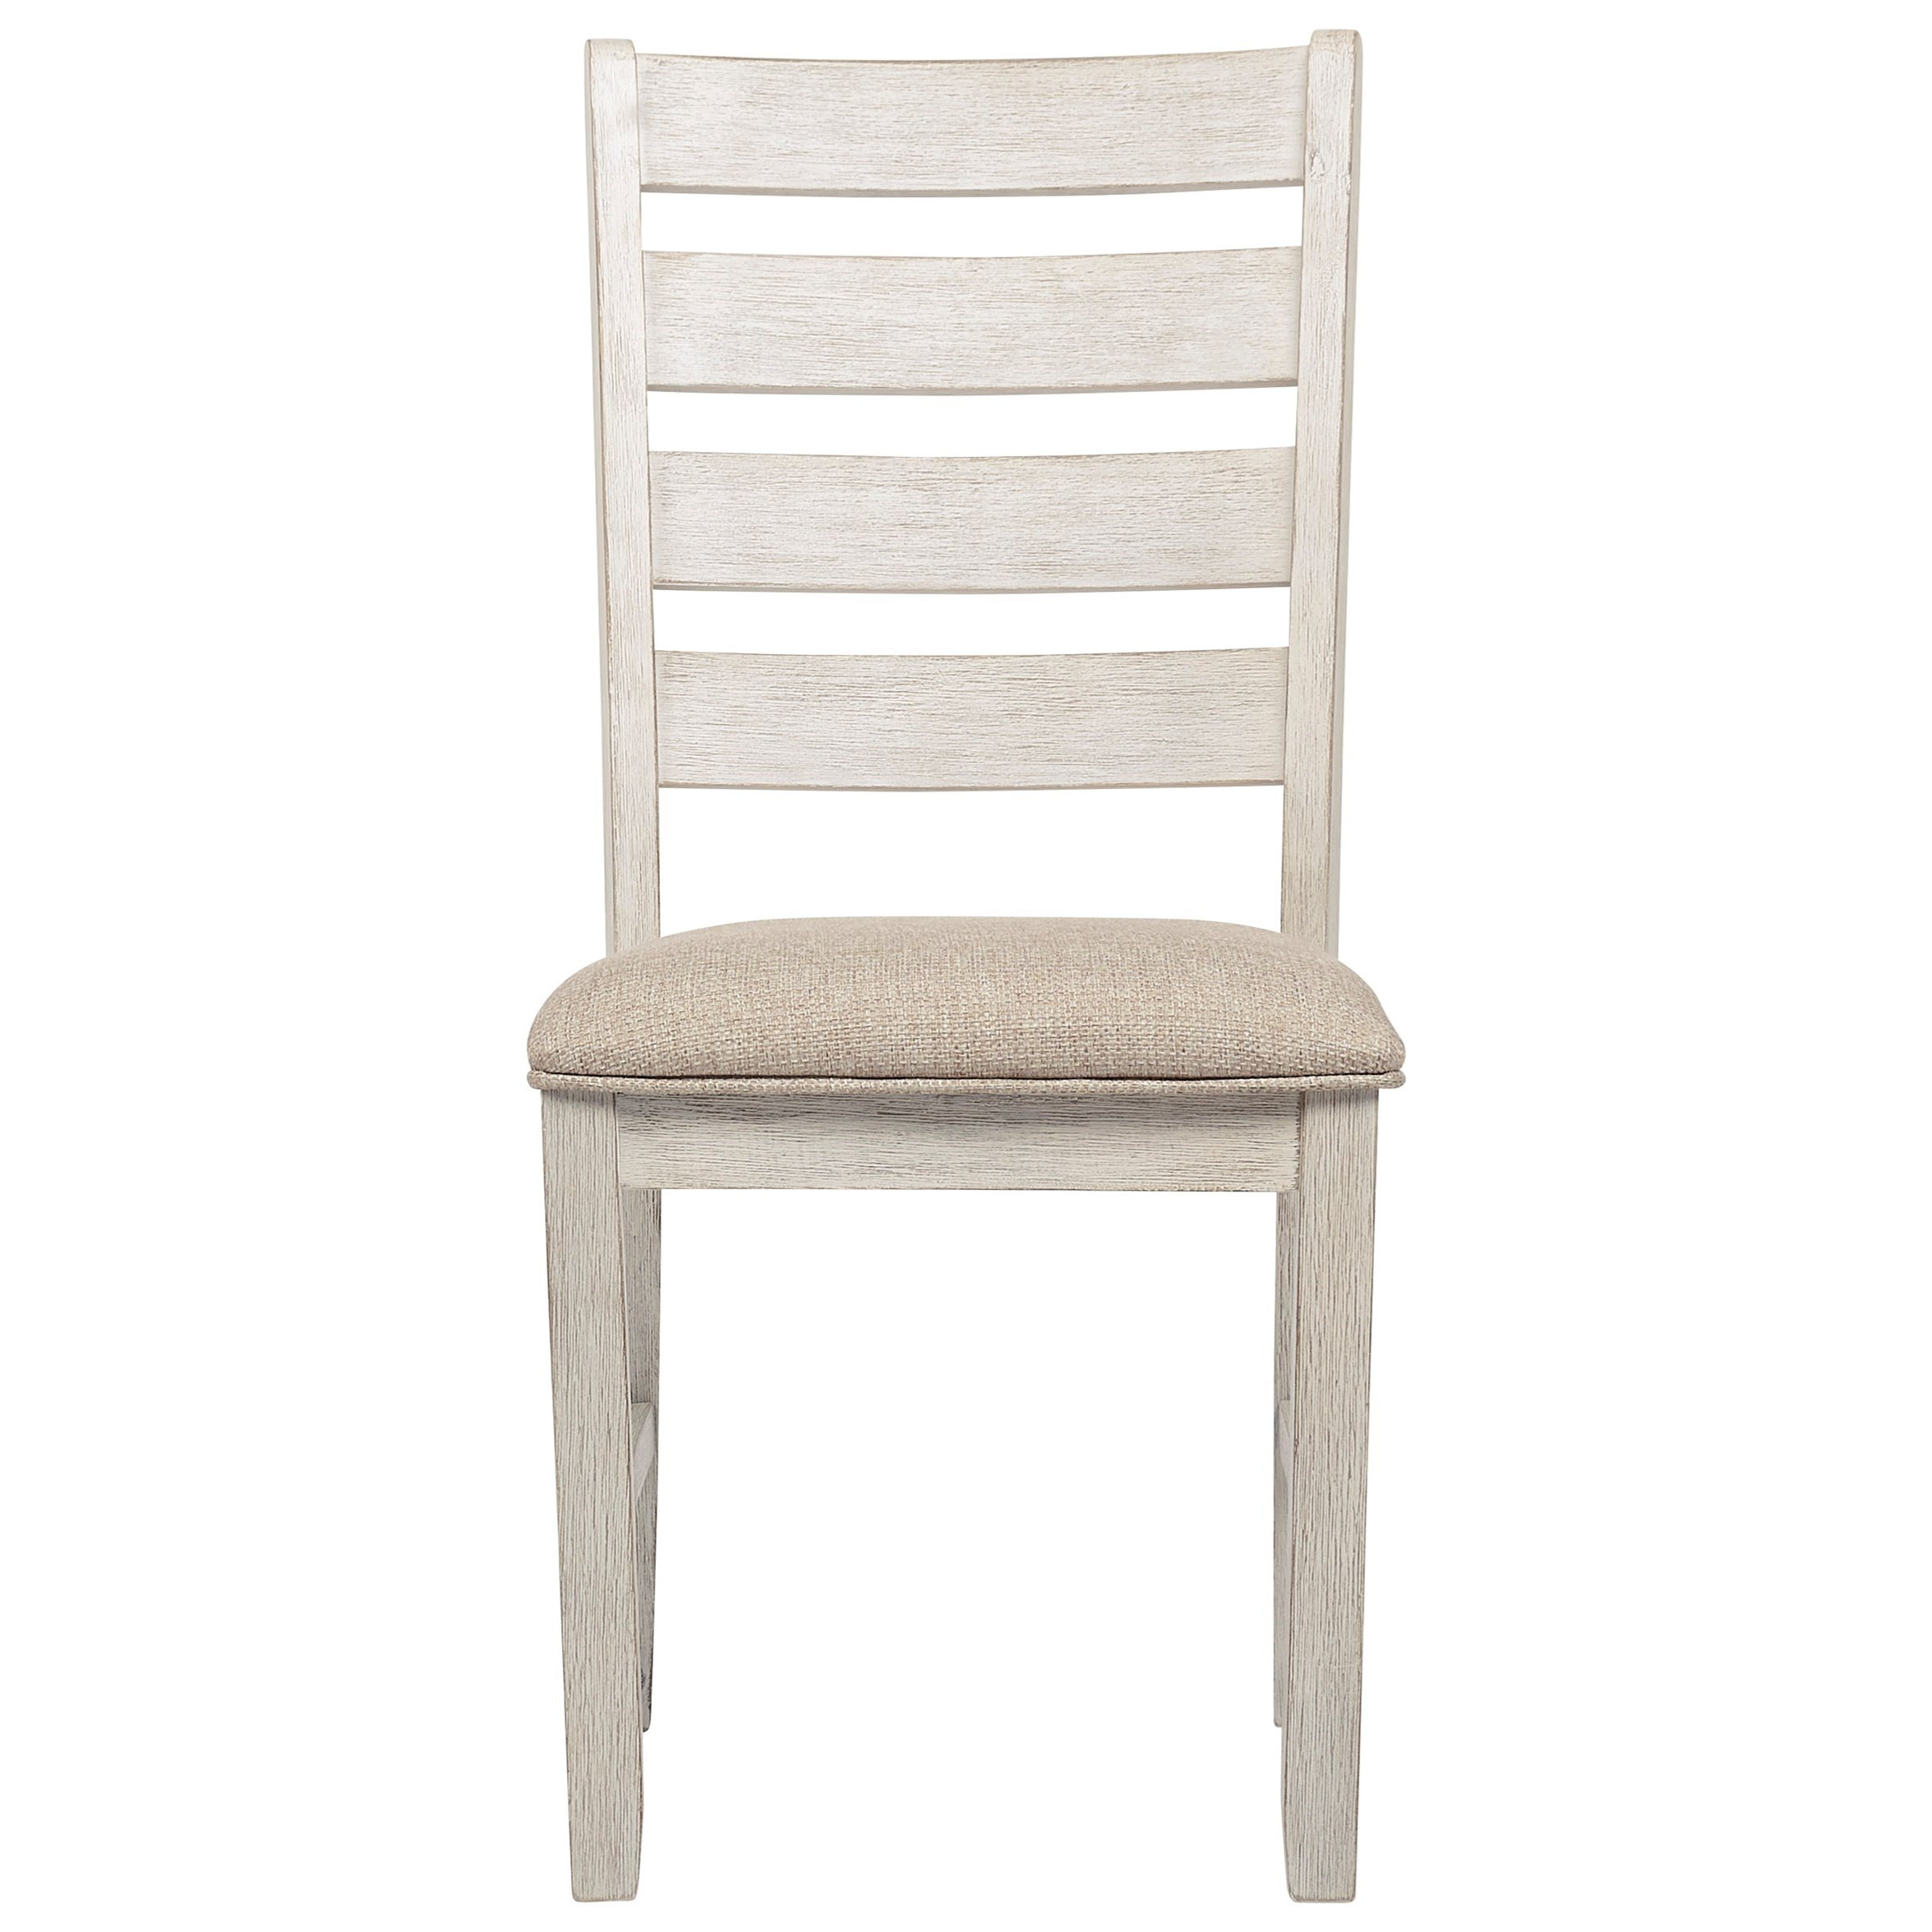 Skempton Dining Upholstered Side Chair by Ashley at Morris Home